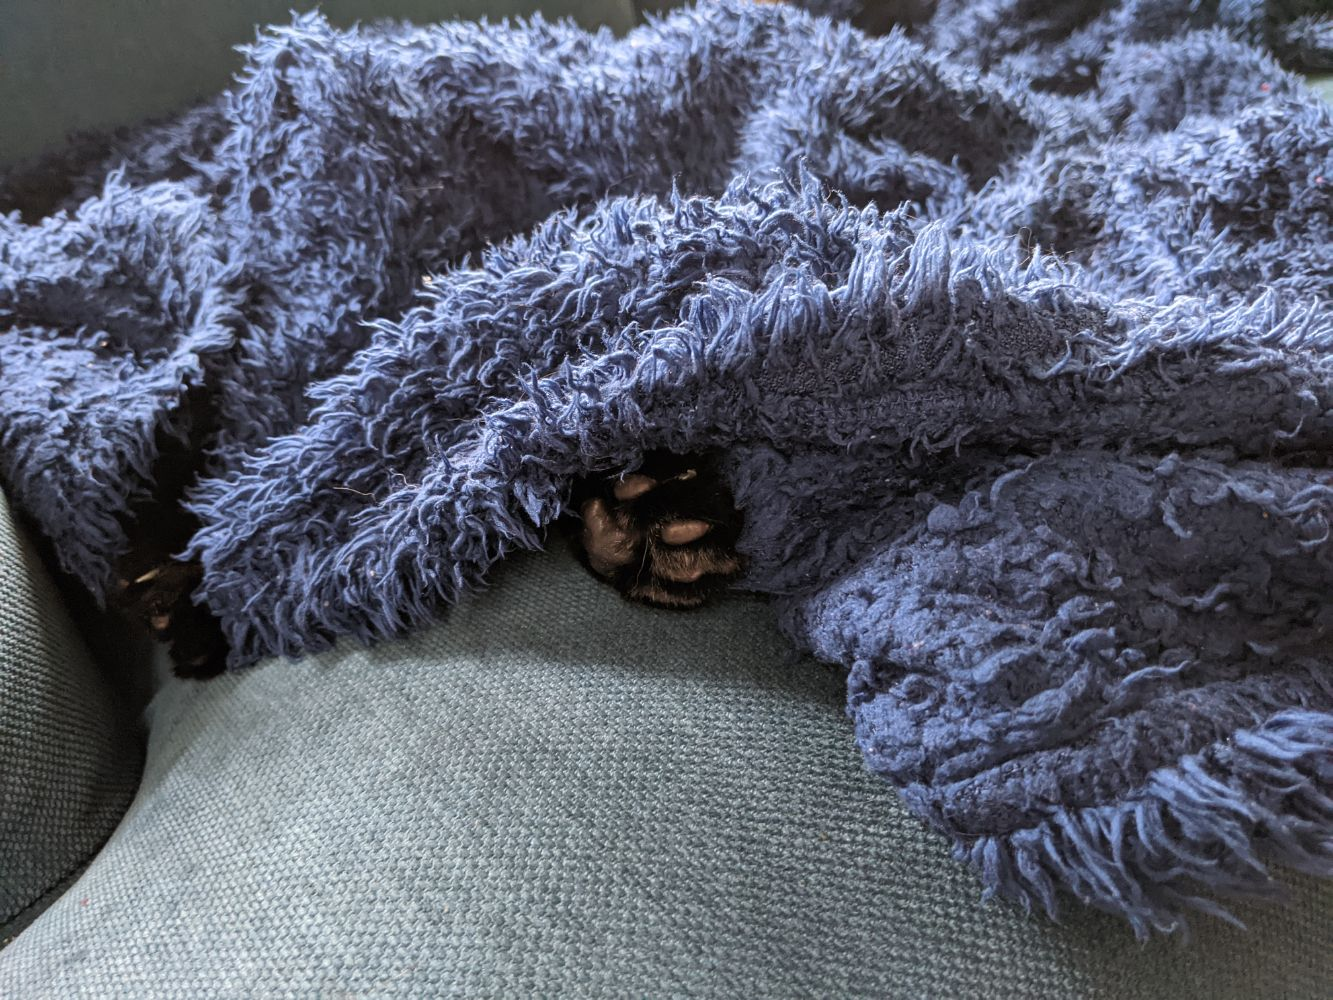 A blue blanket on a blue sofa, with two paws from a black cat (Morph) peeking out, but the rest of him fully under the blanket